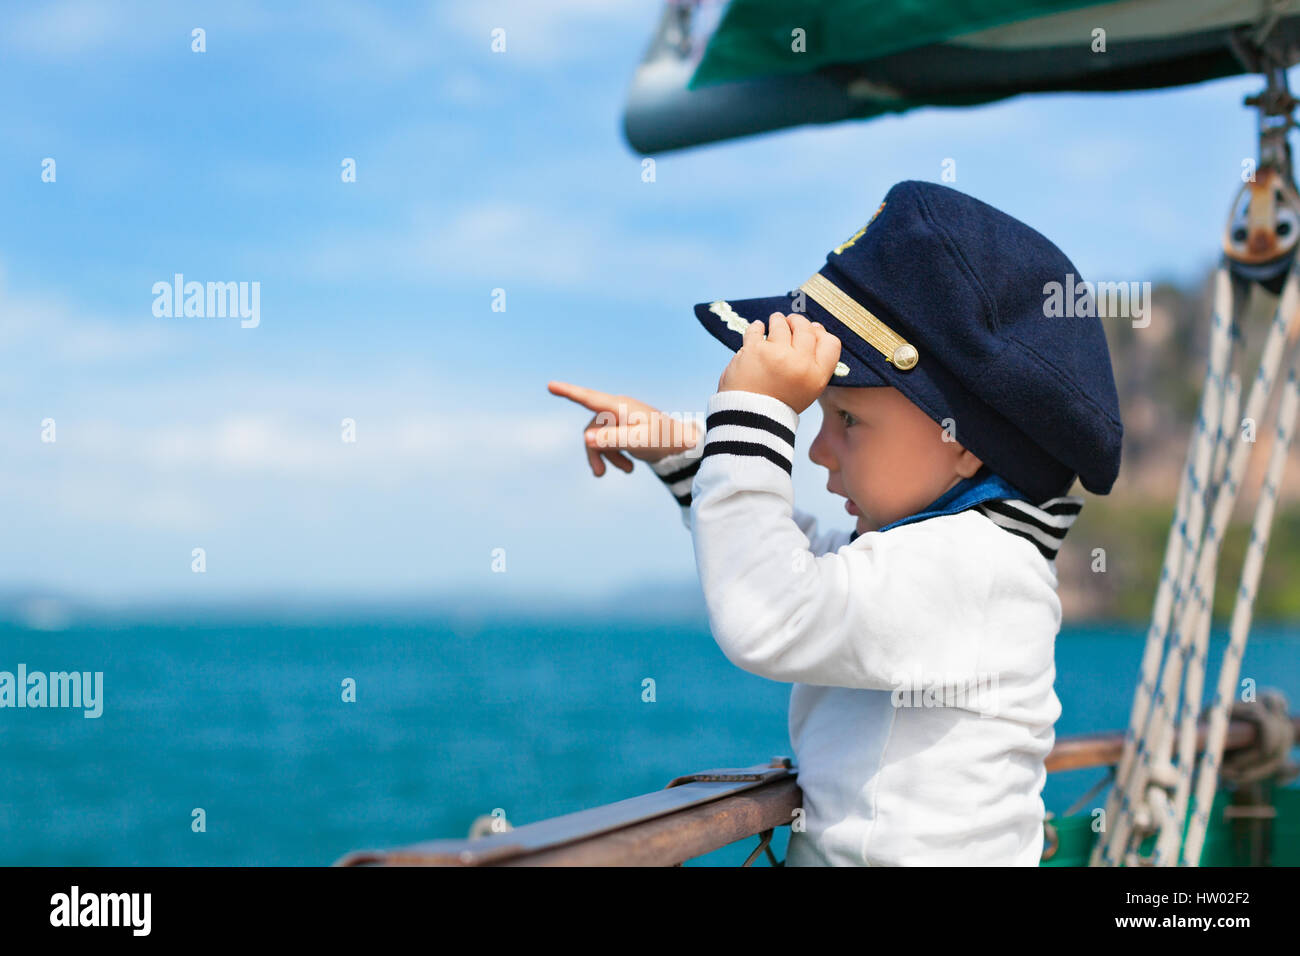 Funny little baby capitano a bordo di yacht a vela a guardare in mare in estate crociere. Viaggi avventura, yachting Immagini Stock